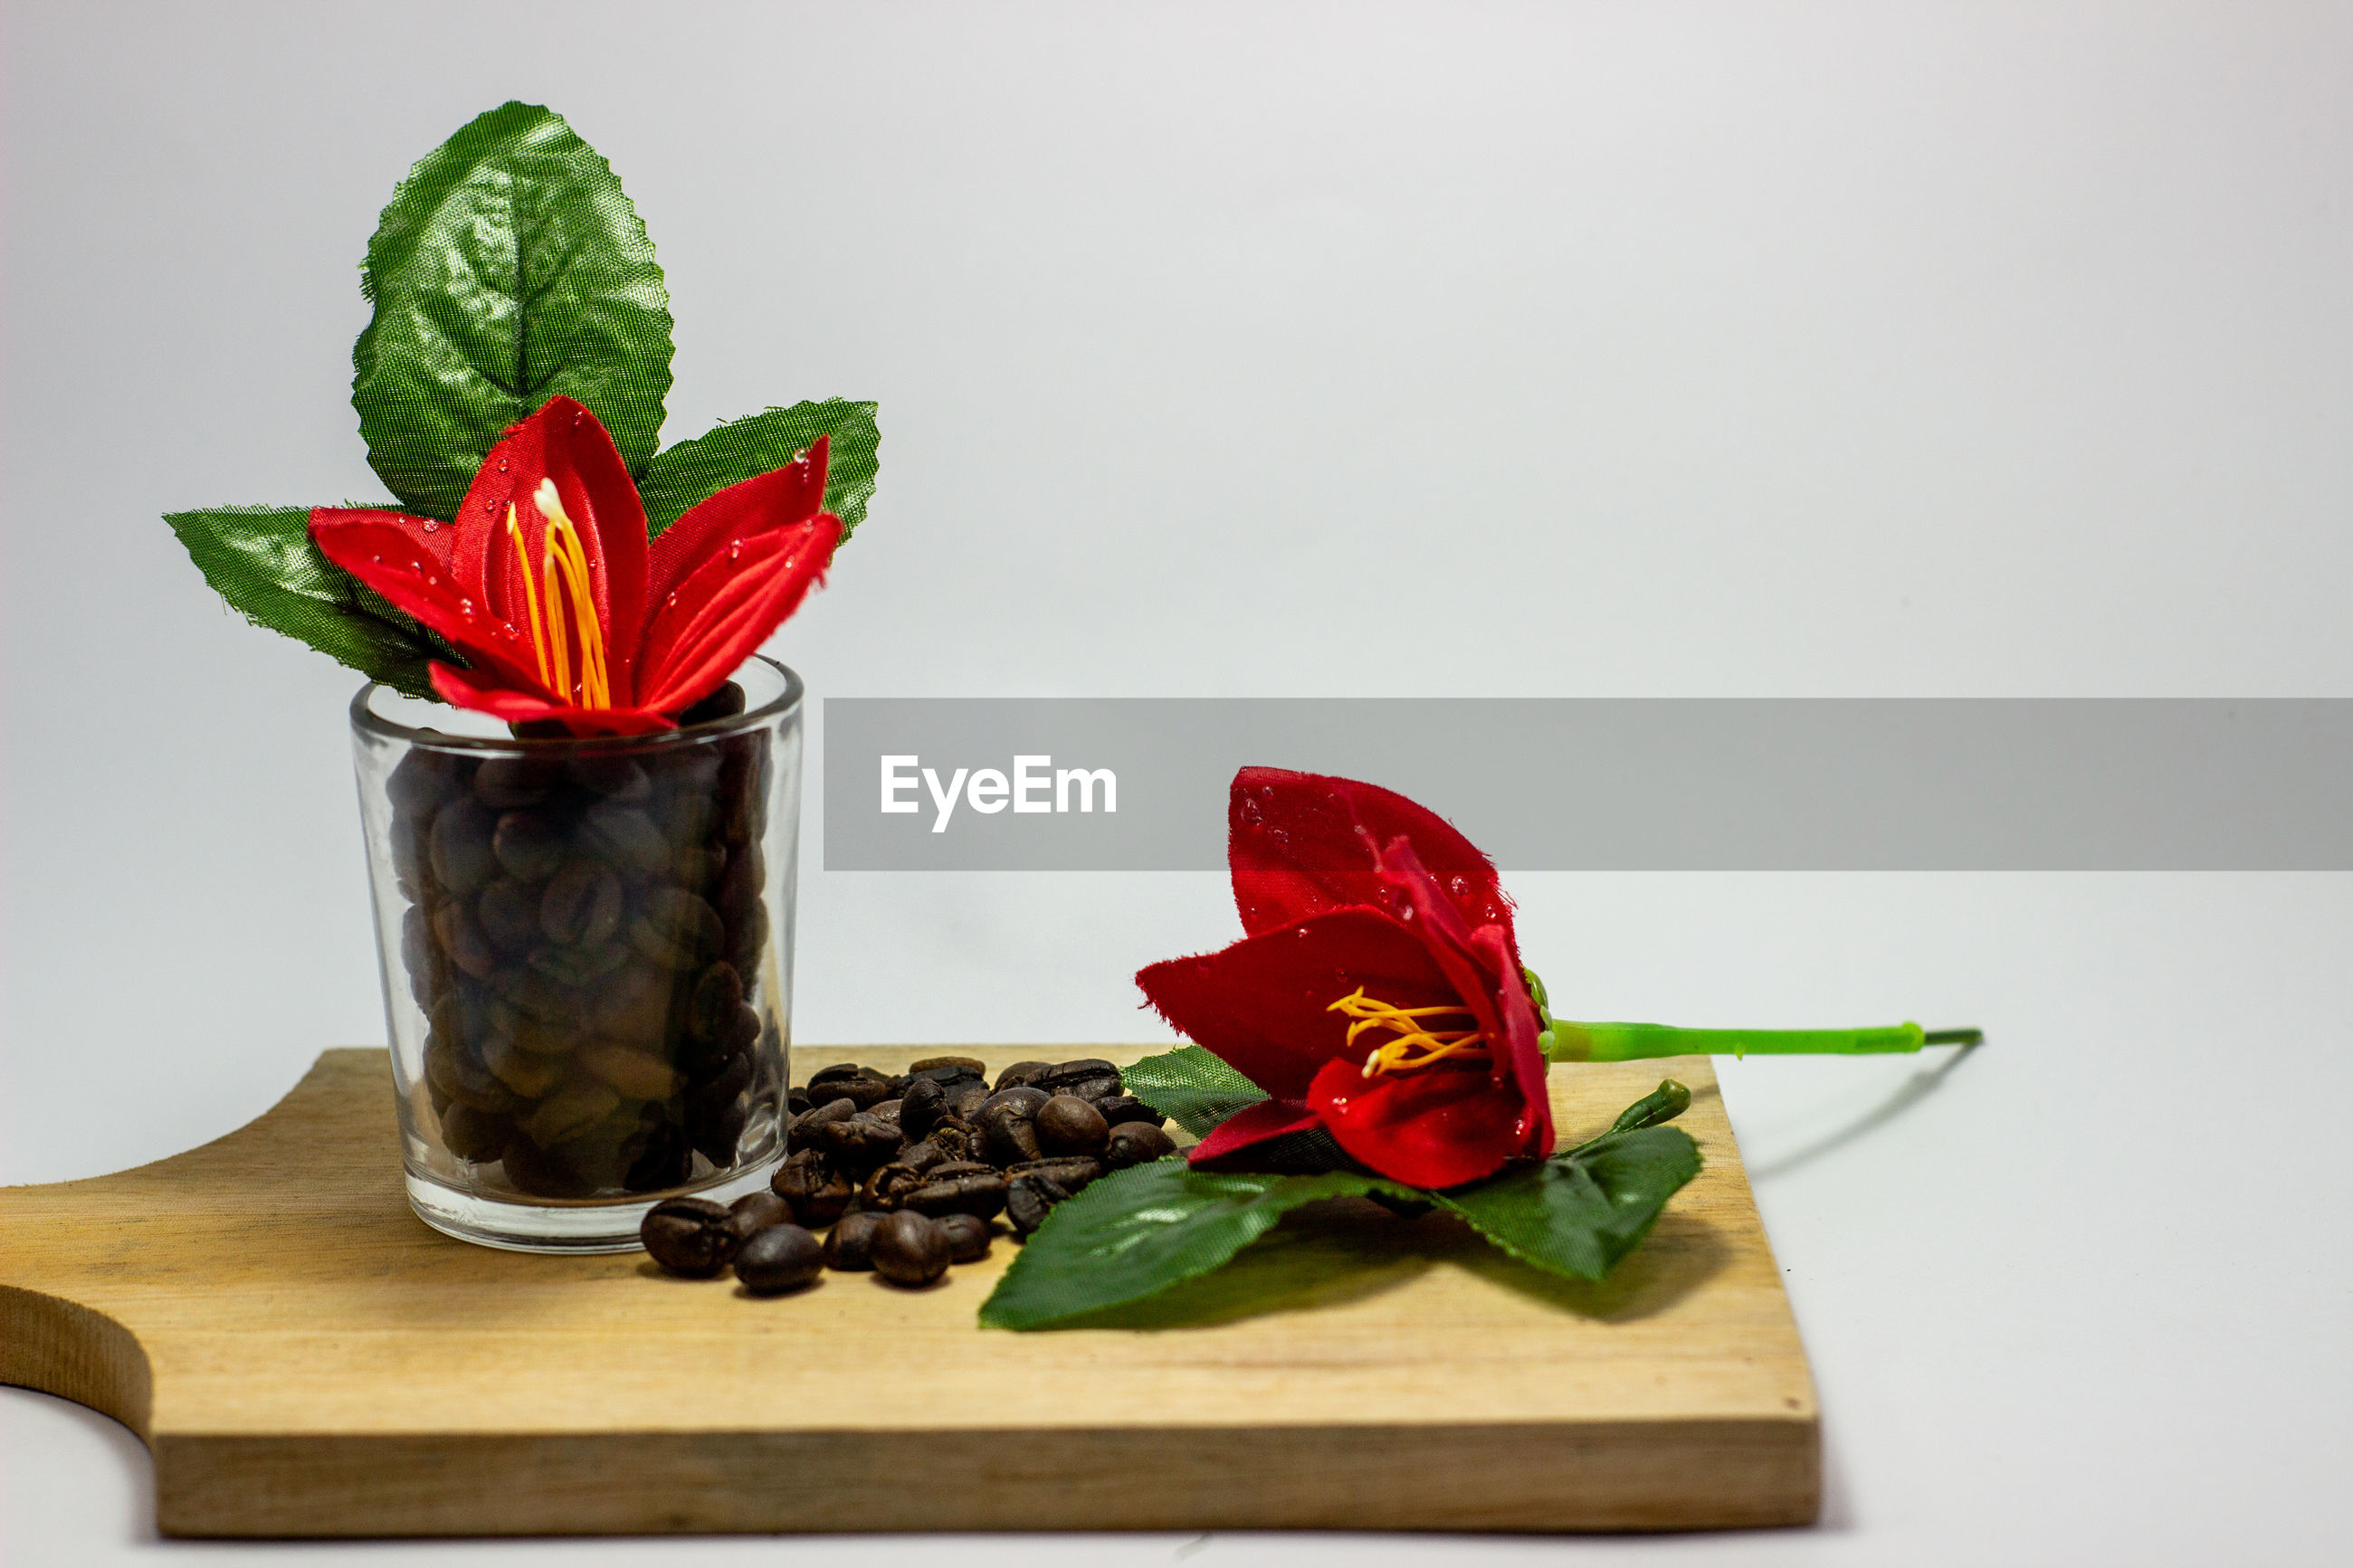 CLOSE-UP OF RED ROSE ON TABLE WITH LEAVES